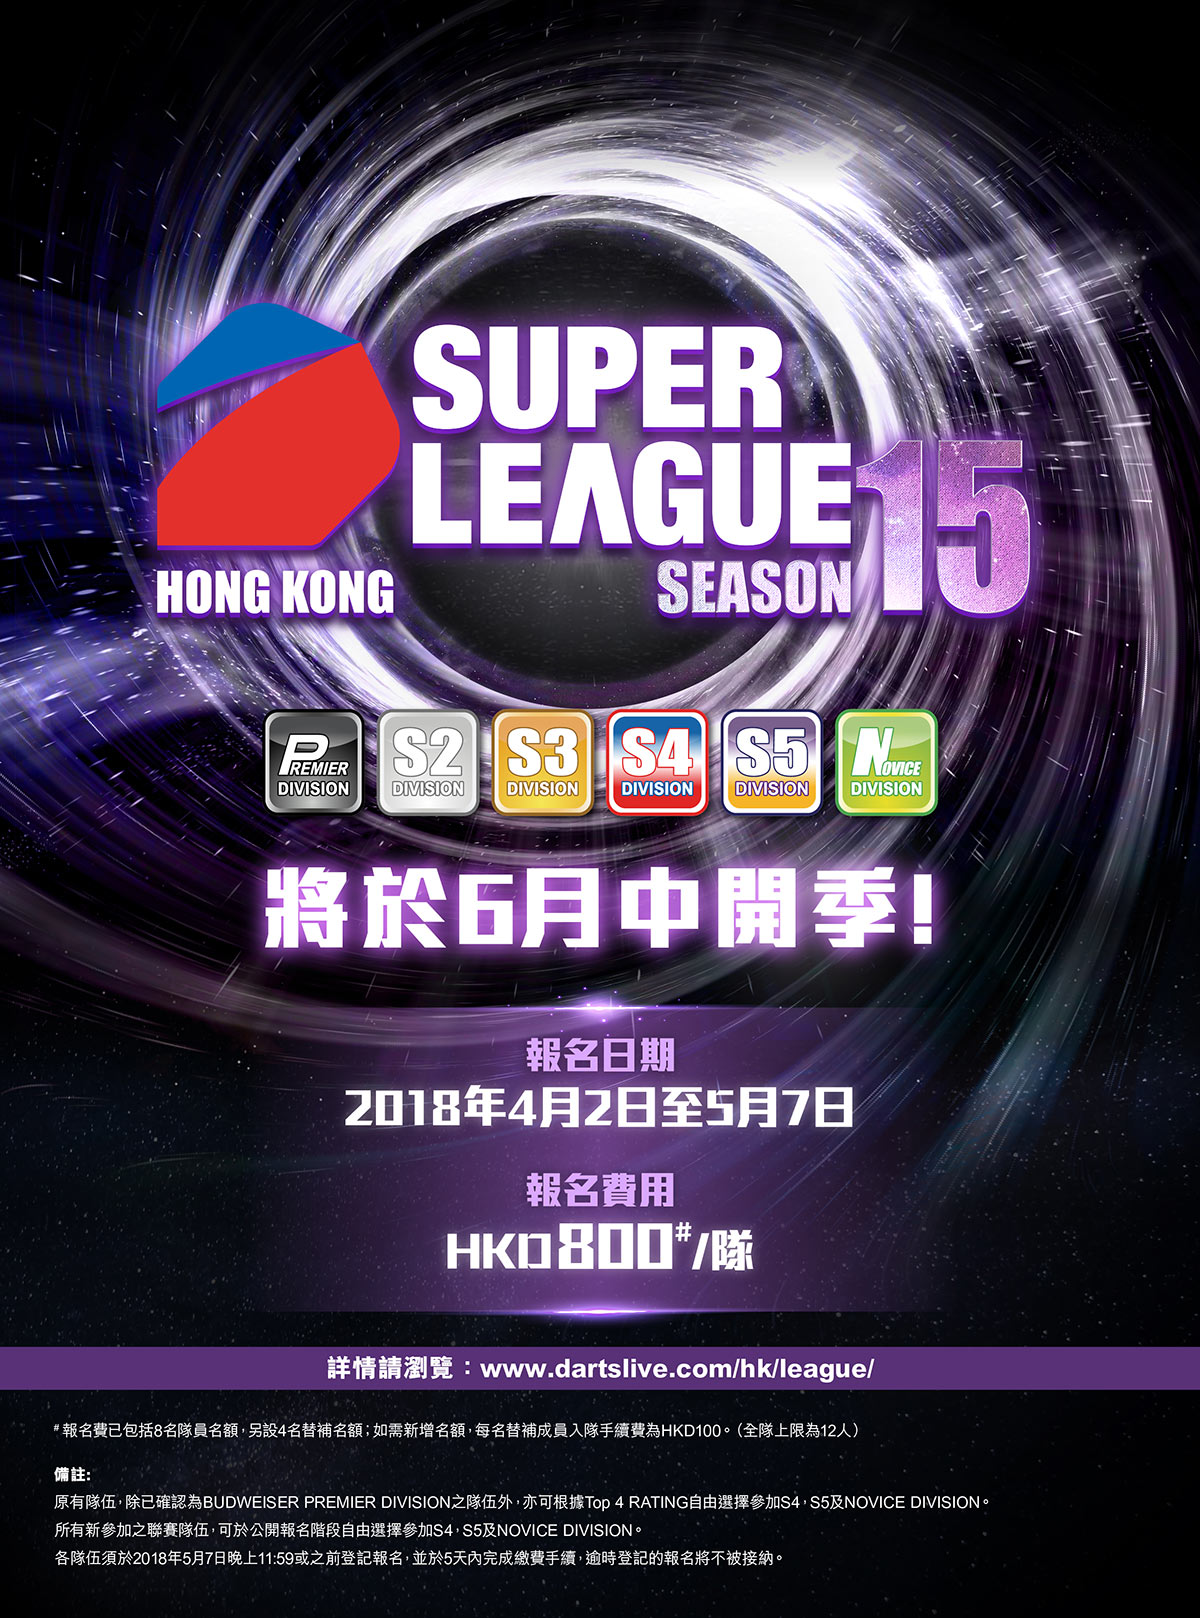 SUPER LEAUGE SEASON 14 POSTER